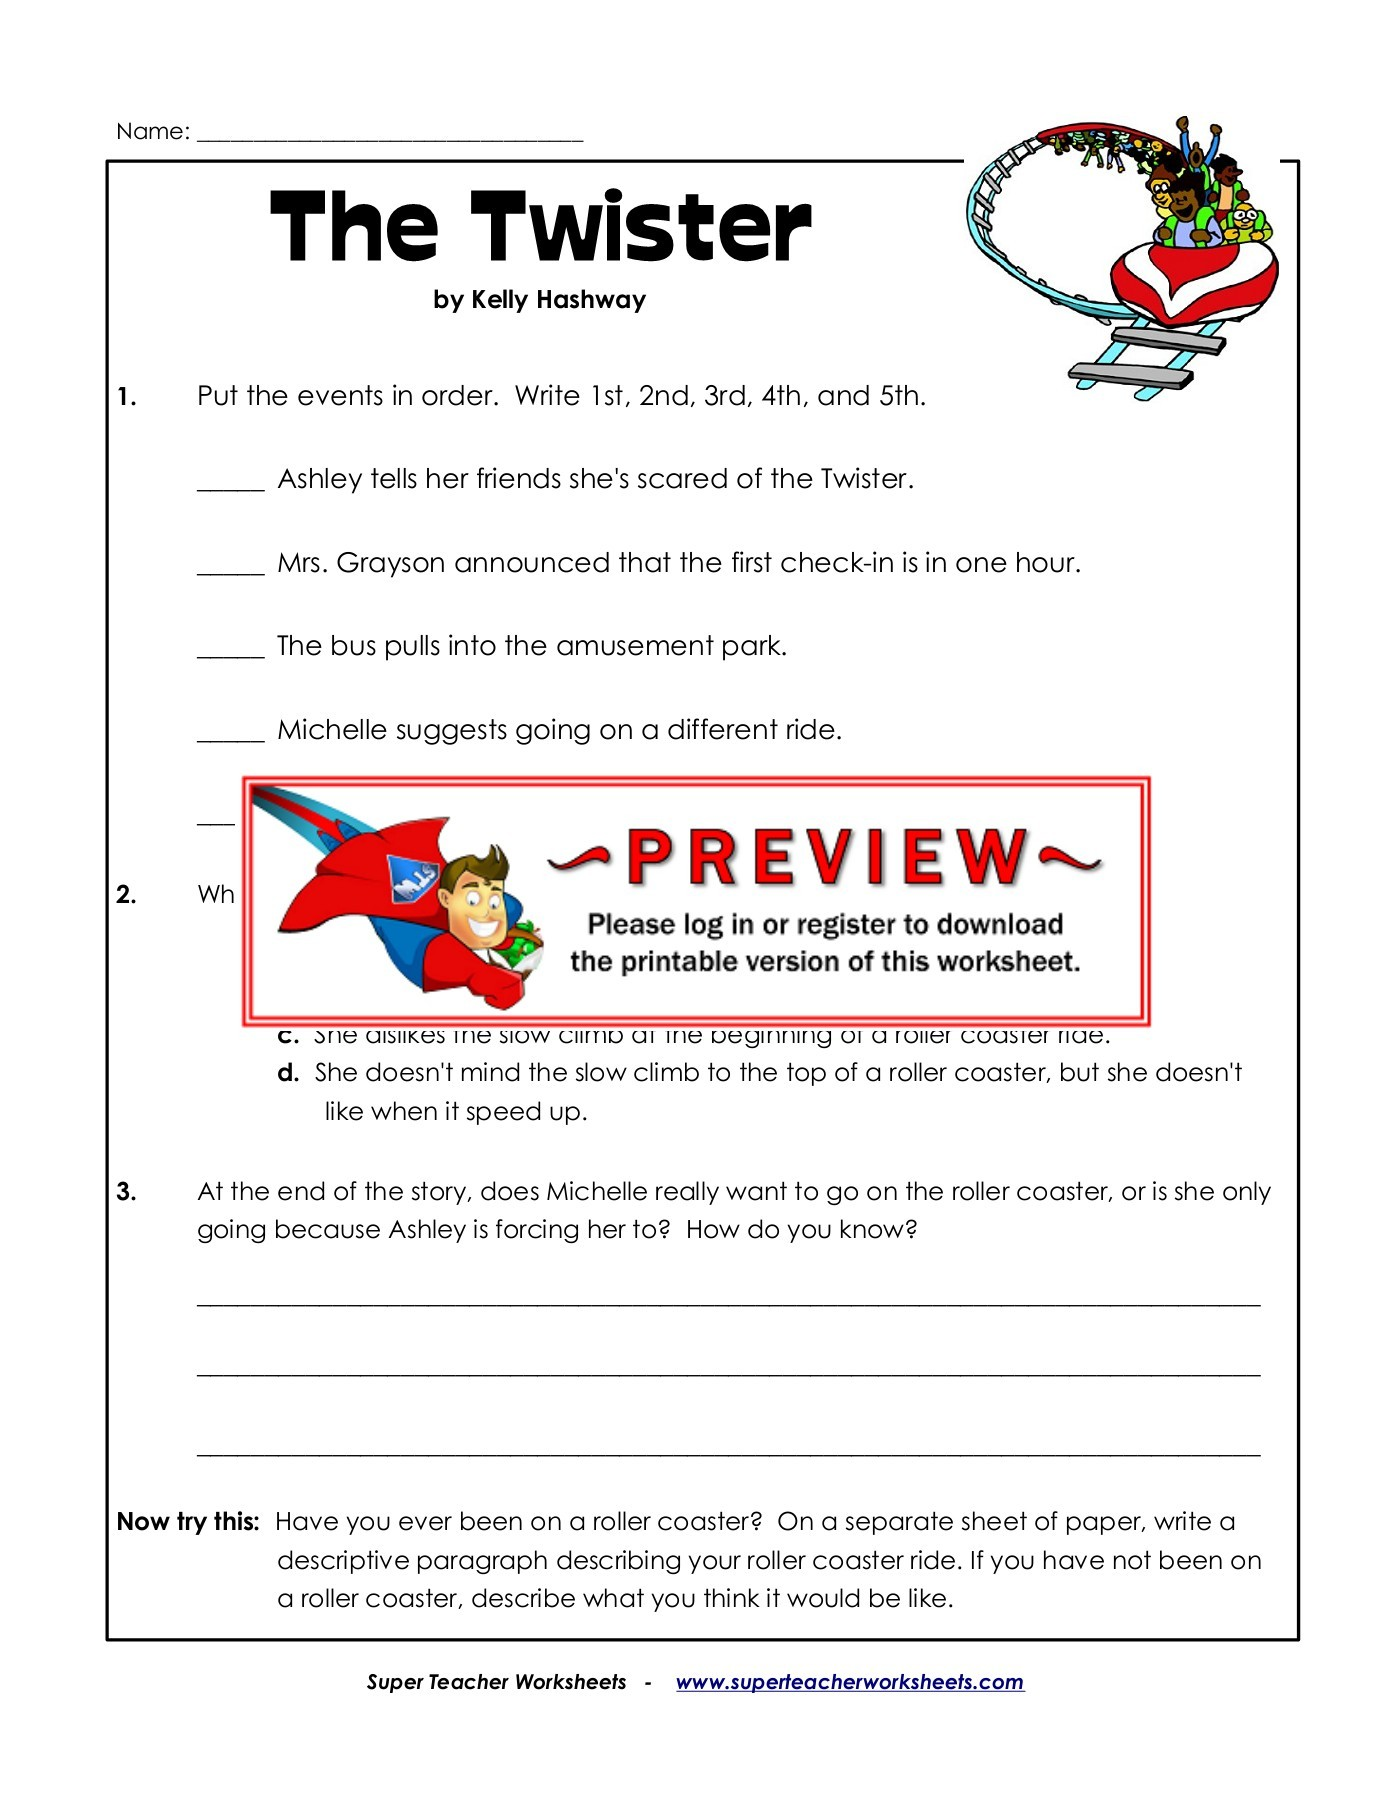 Twister Video Worksheet Answers